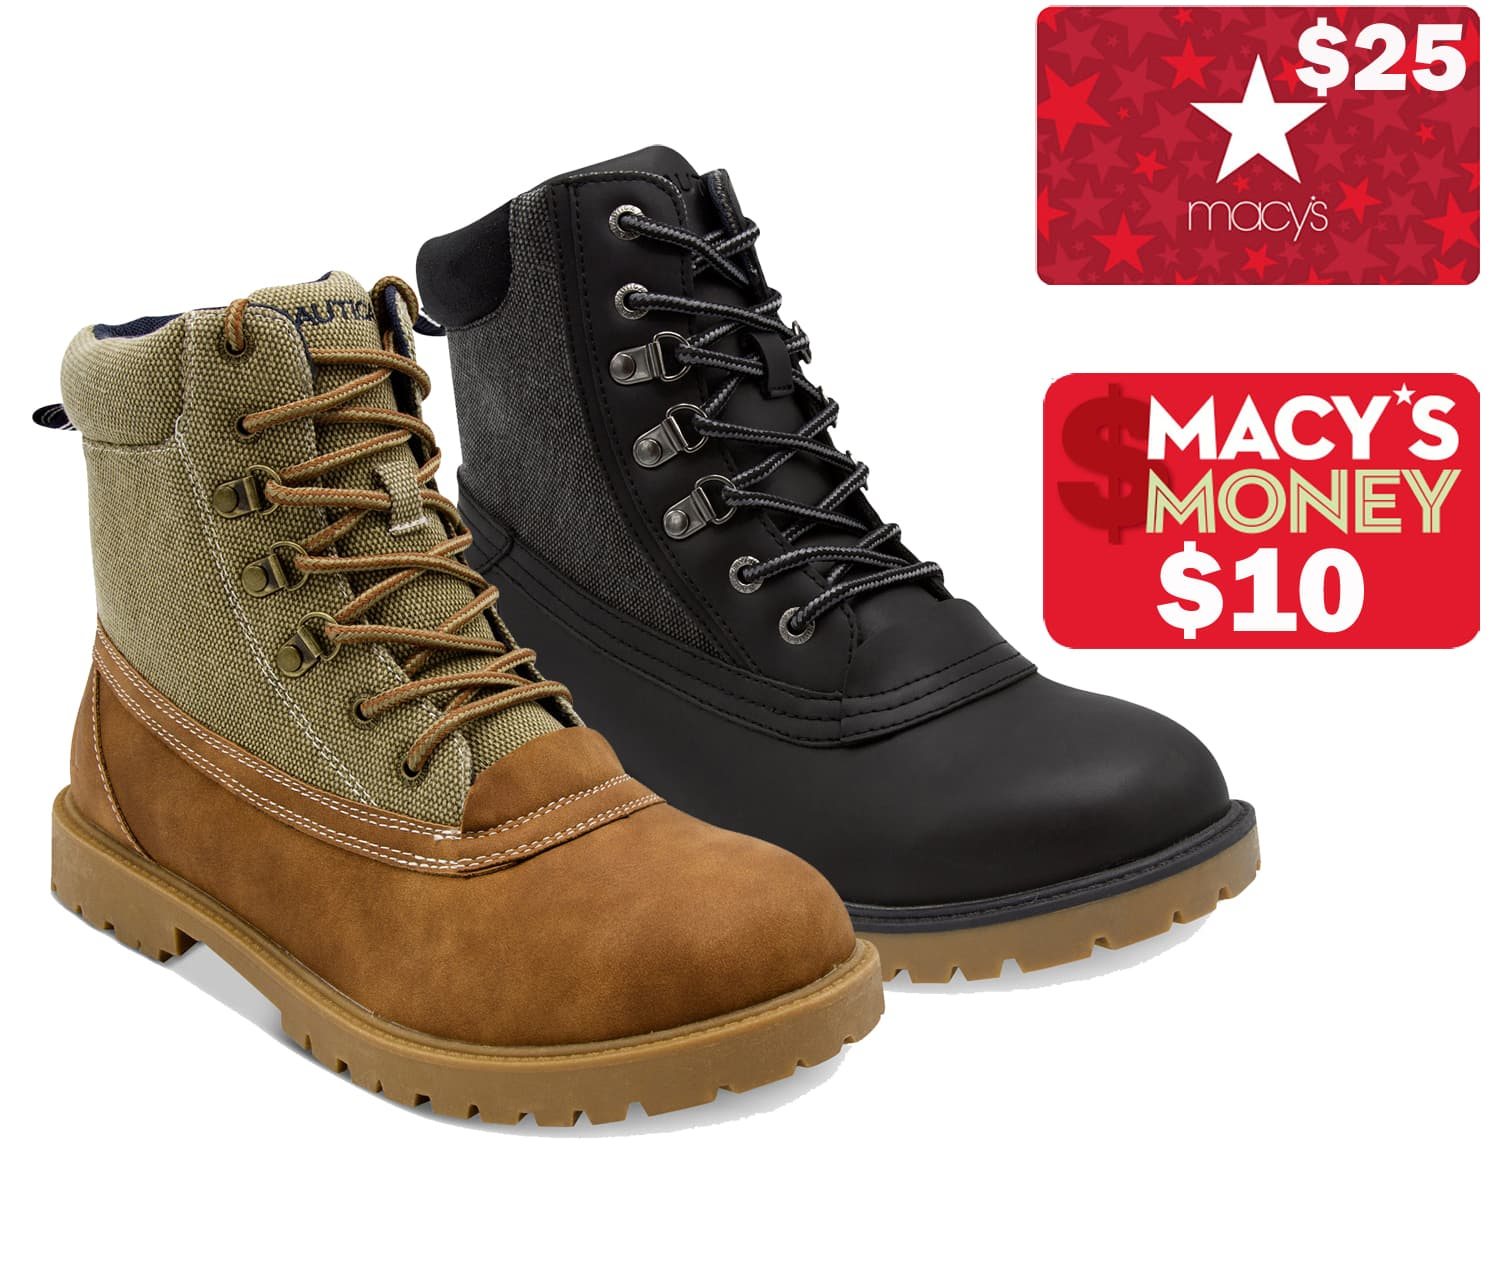 Men's Nautica, Kenneth Cole or Alfani Boots 2 for $60 + earn $25 Macys eGift Card + $10 in Macys Money (after Slickdeals rebate) + free shipping